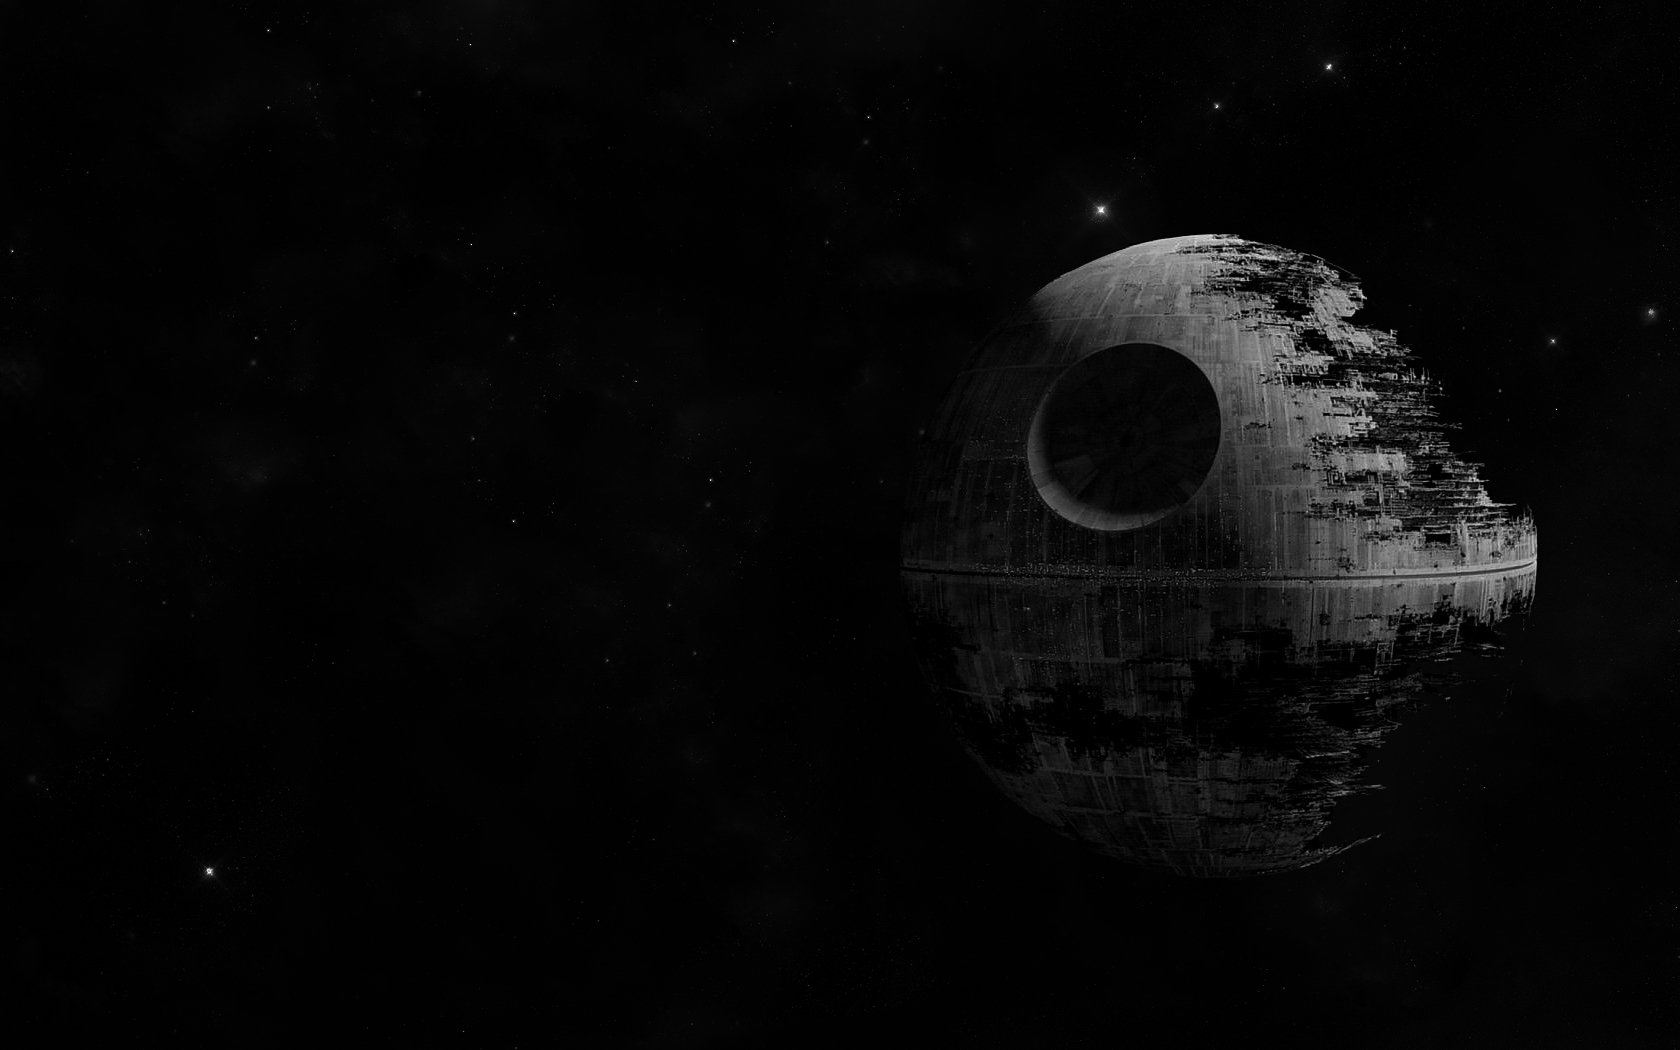 Sci Fi - Star Wars  Movie Weapon Death Star Wallpaper